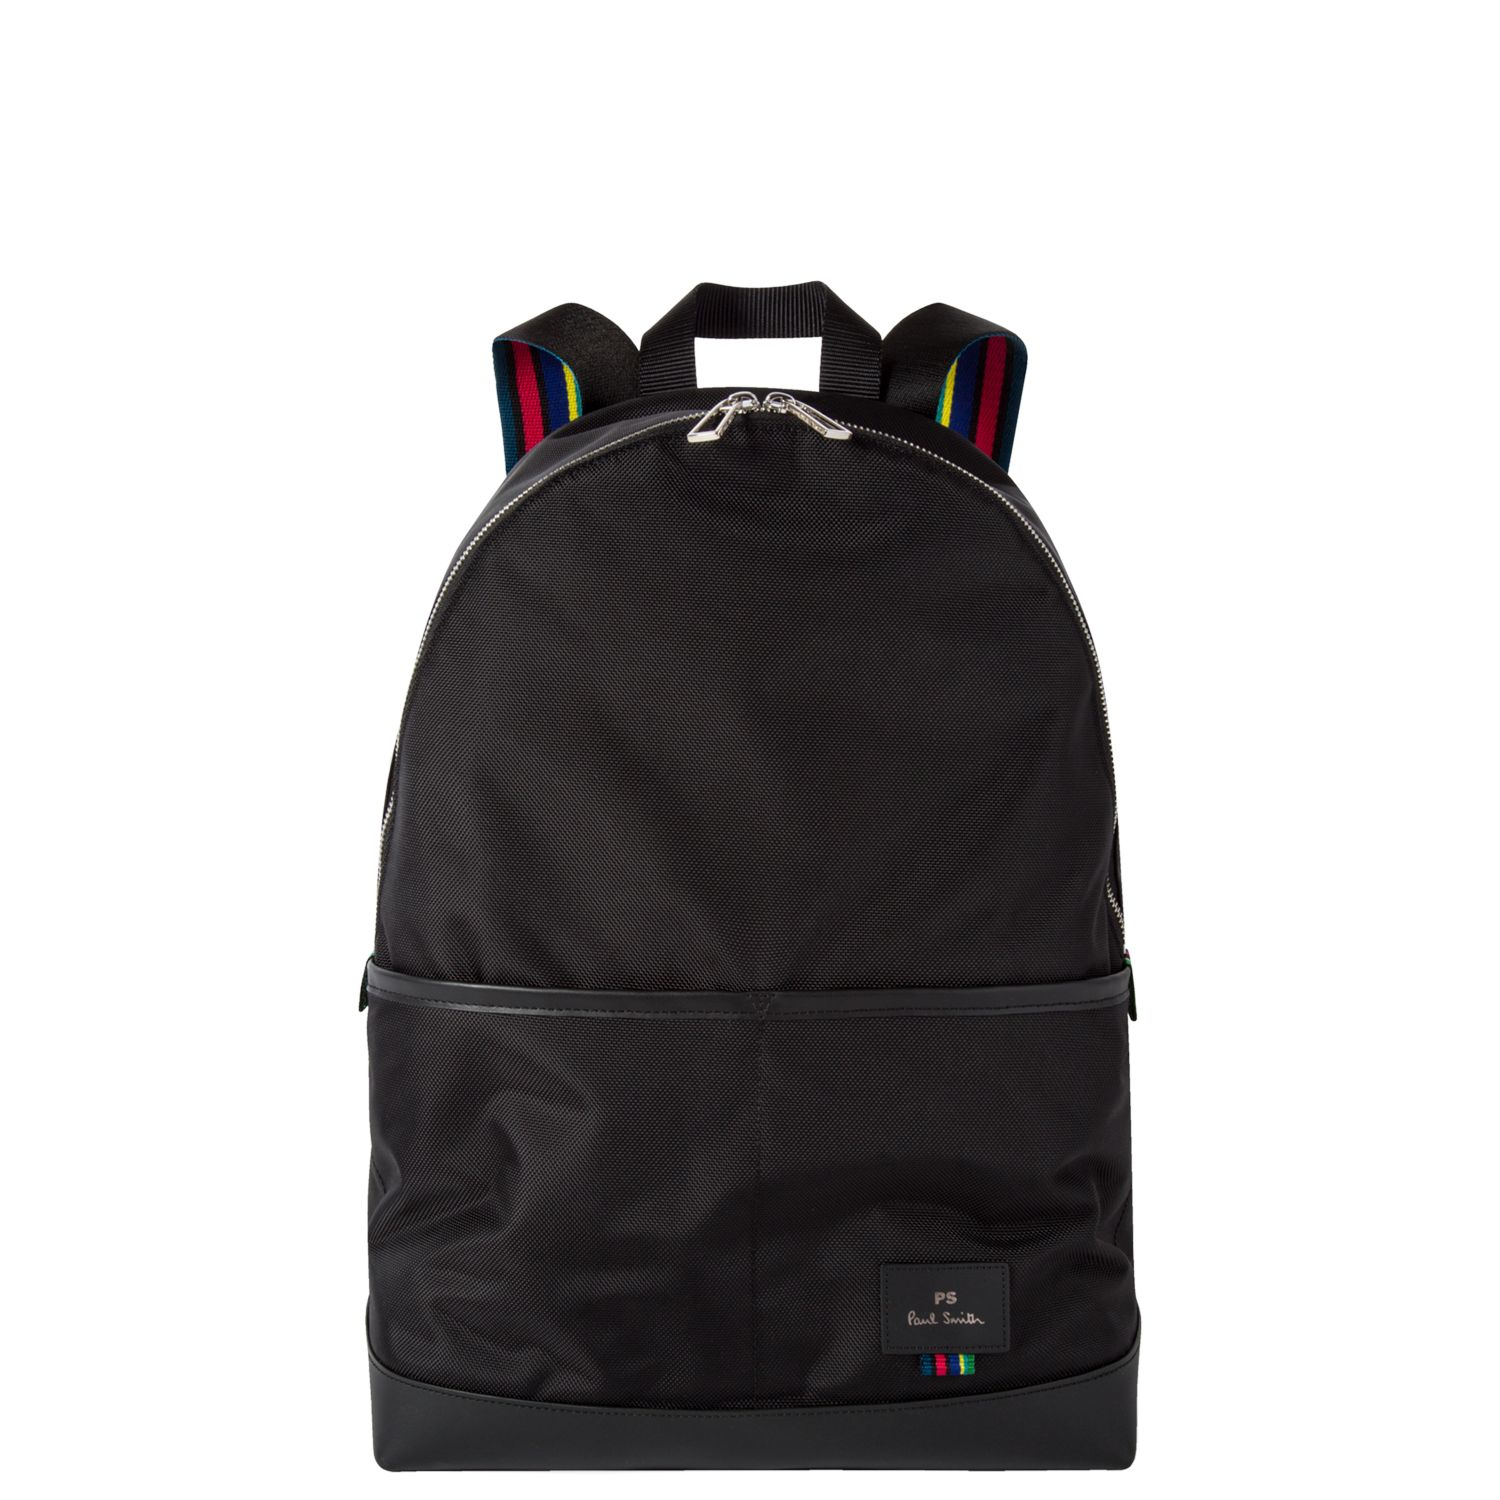 Baby Bags John Lewis Ps Paul Smith Nylon Backpack Black At John Lewis Partners